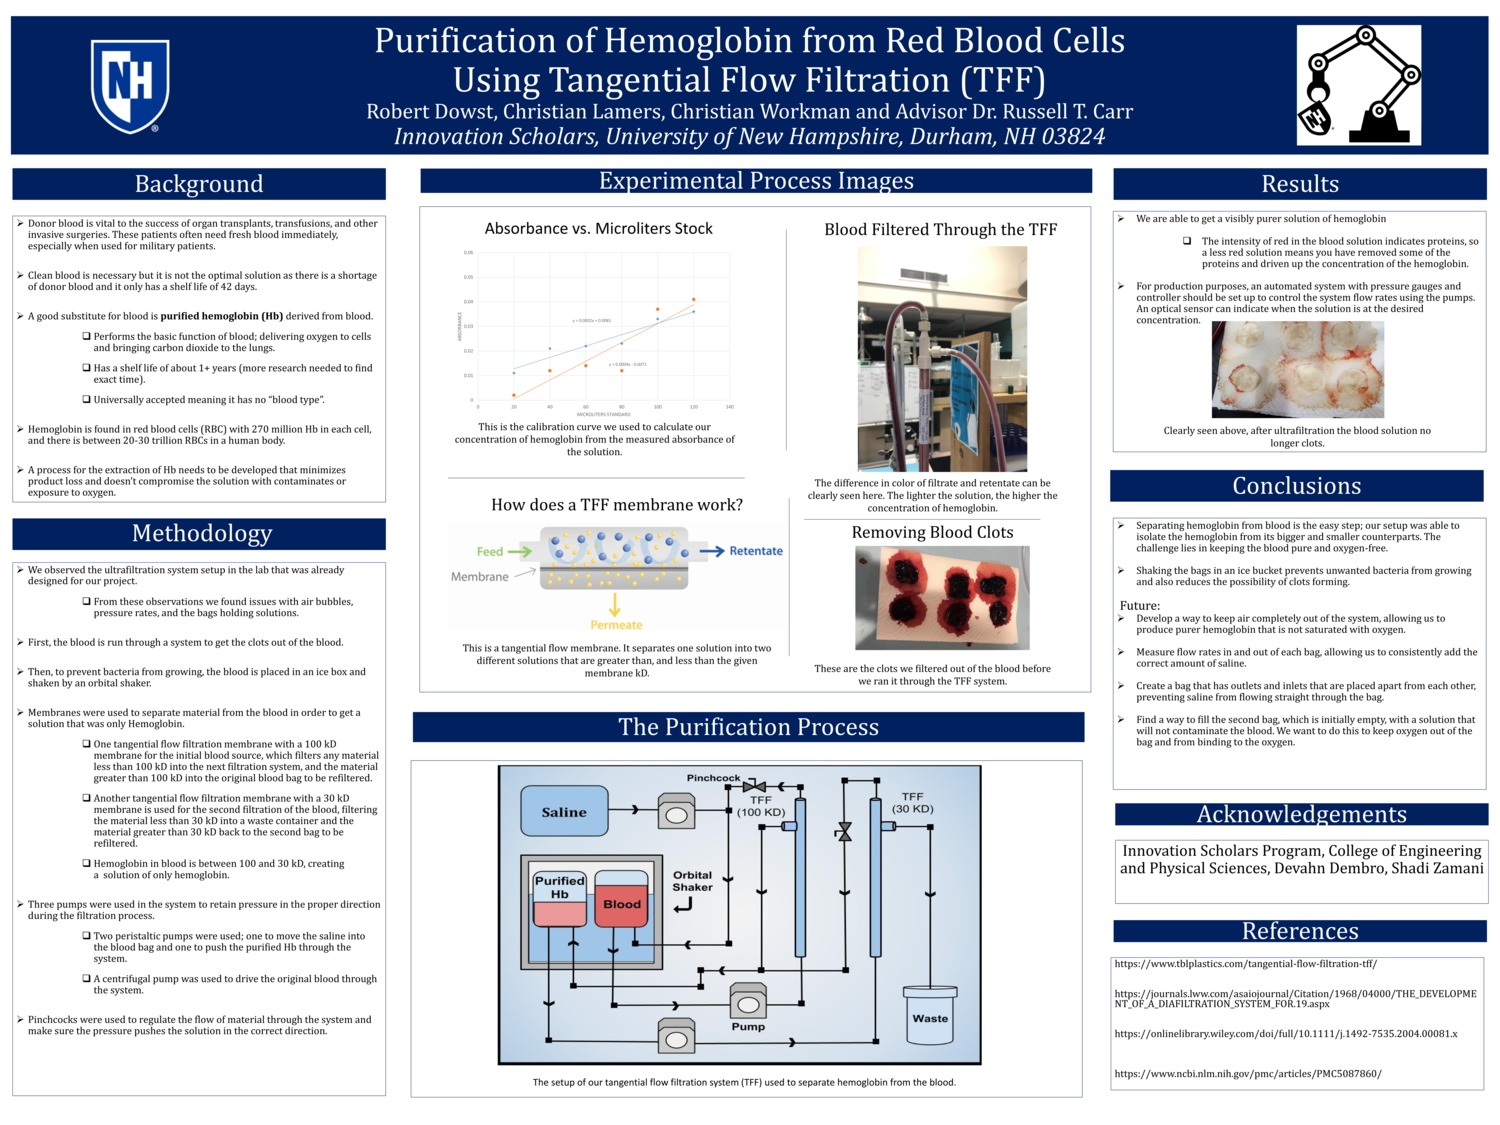 Purification Of Hemoglobin From Red Blood Cells Using Tangential Flow Filtration (Tff) by cnw1009